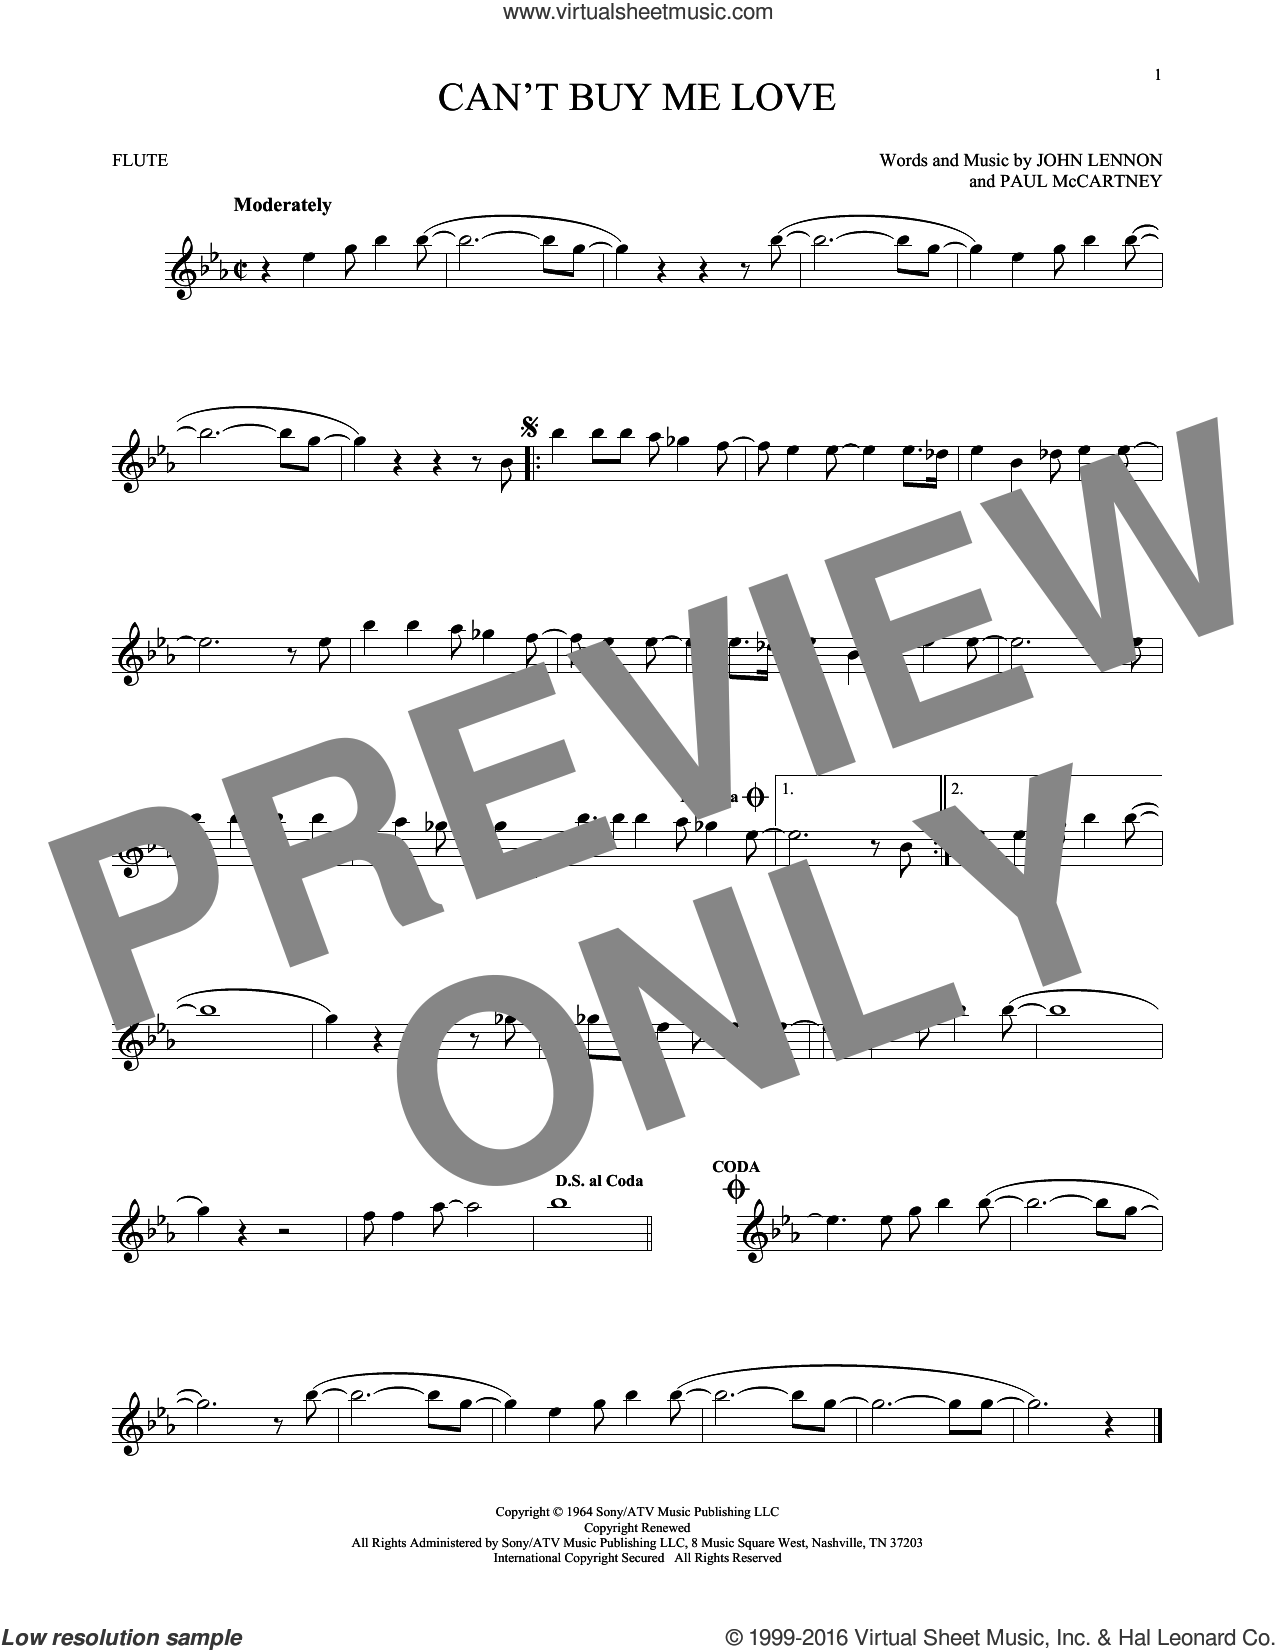 Can't Buy Me Love sheet music for flute solo by Paul McCartney, The Beatles and John Lennon. Score Image Preview.